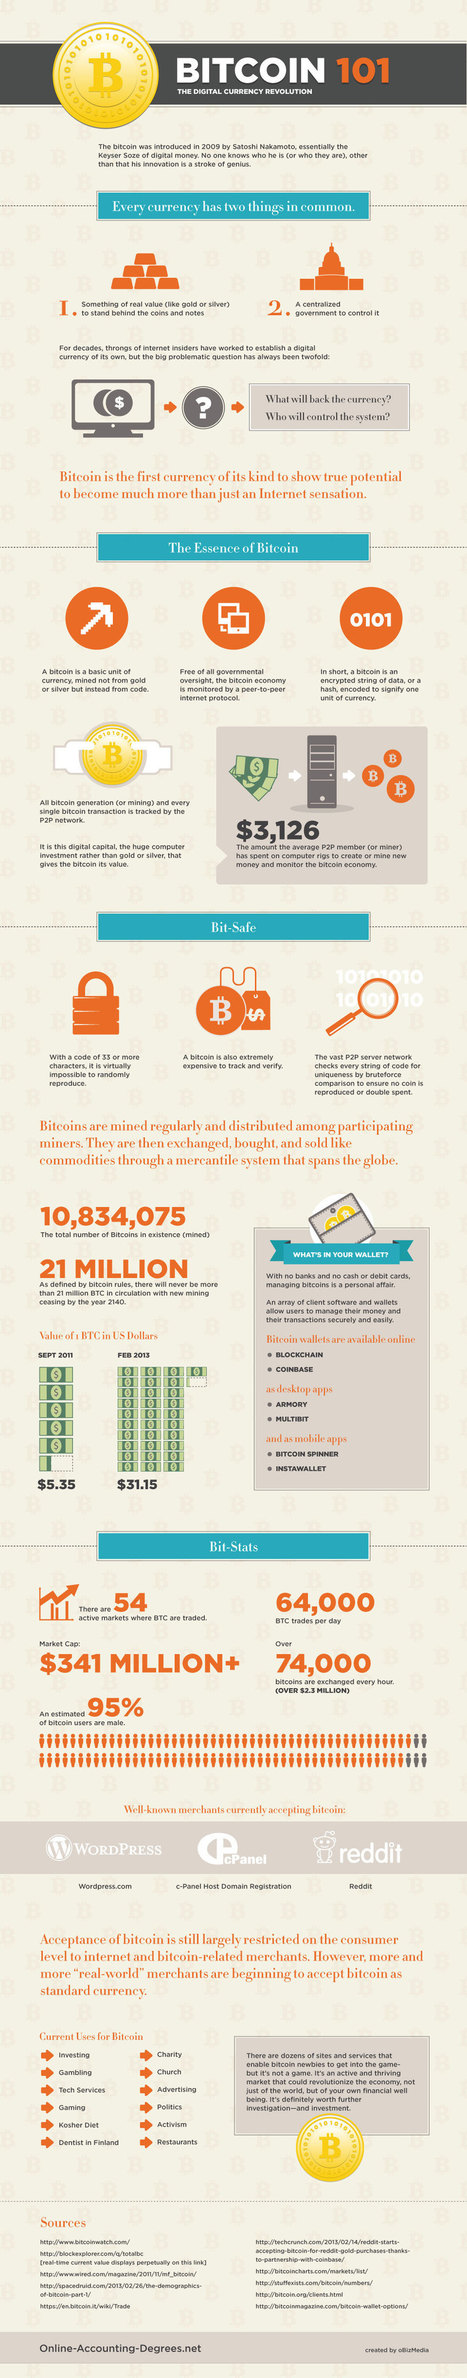 Bitcoin 101: The Digital Currency Revolution [INFOGRAPHIC] | CrowdSourcing InfoGraphics | Scoop.it